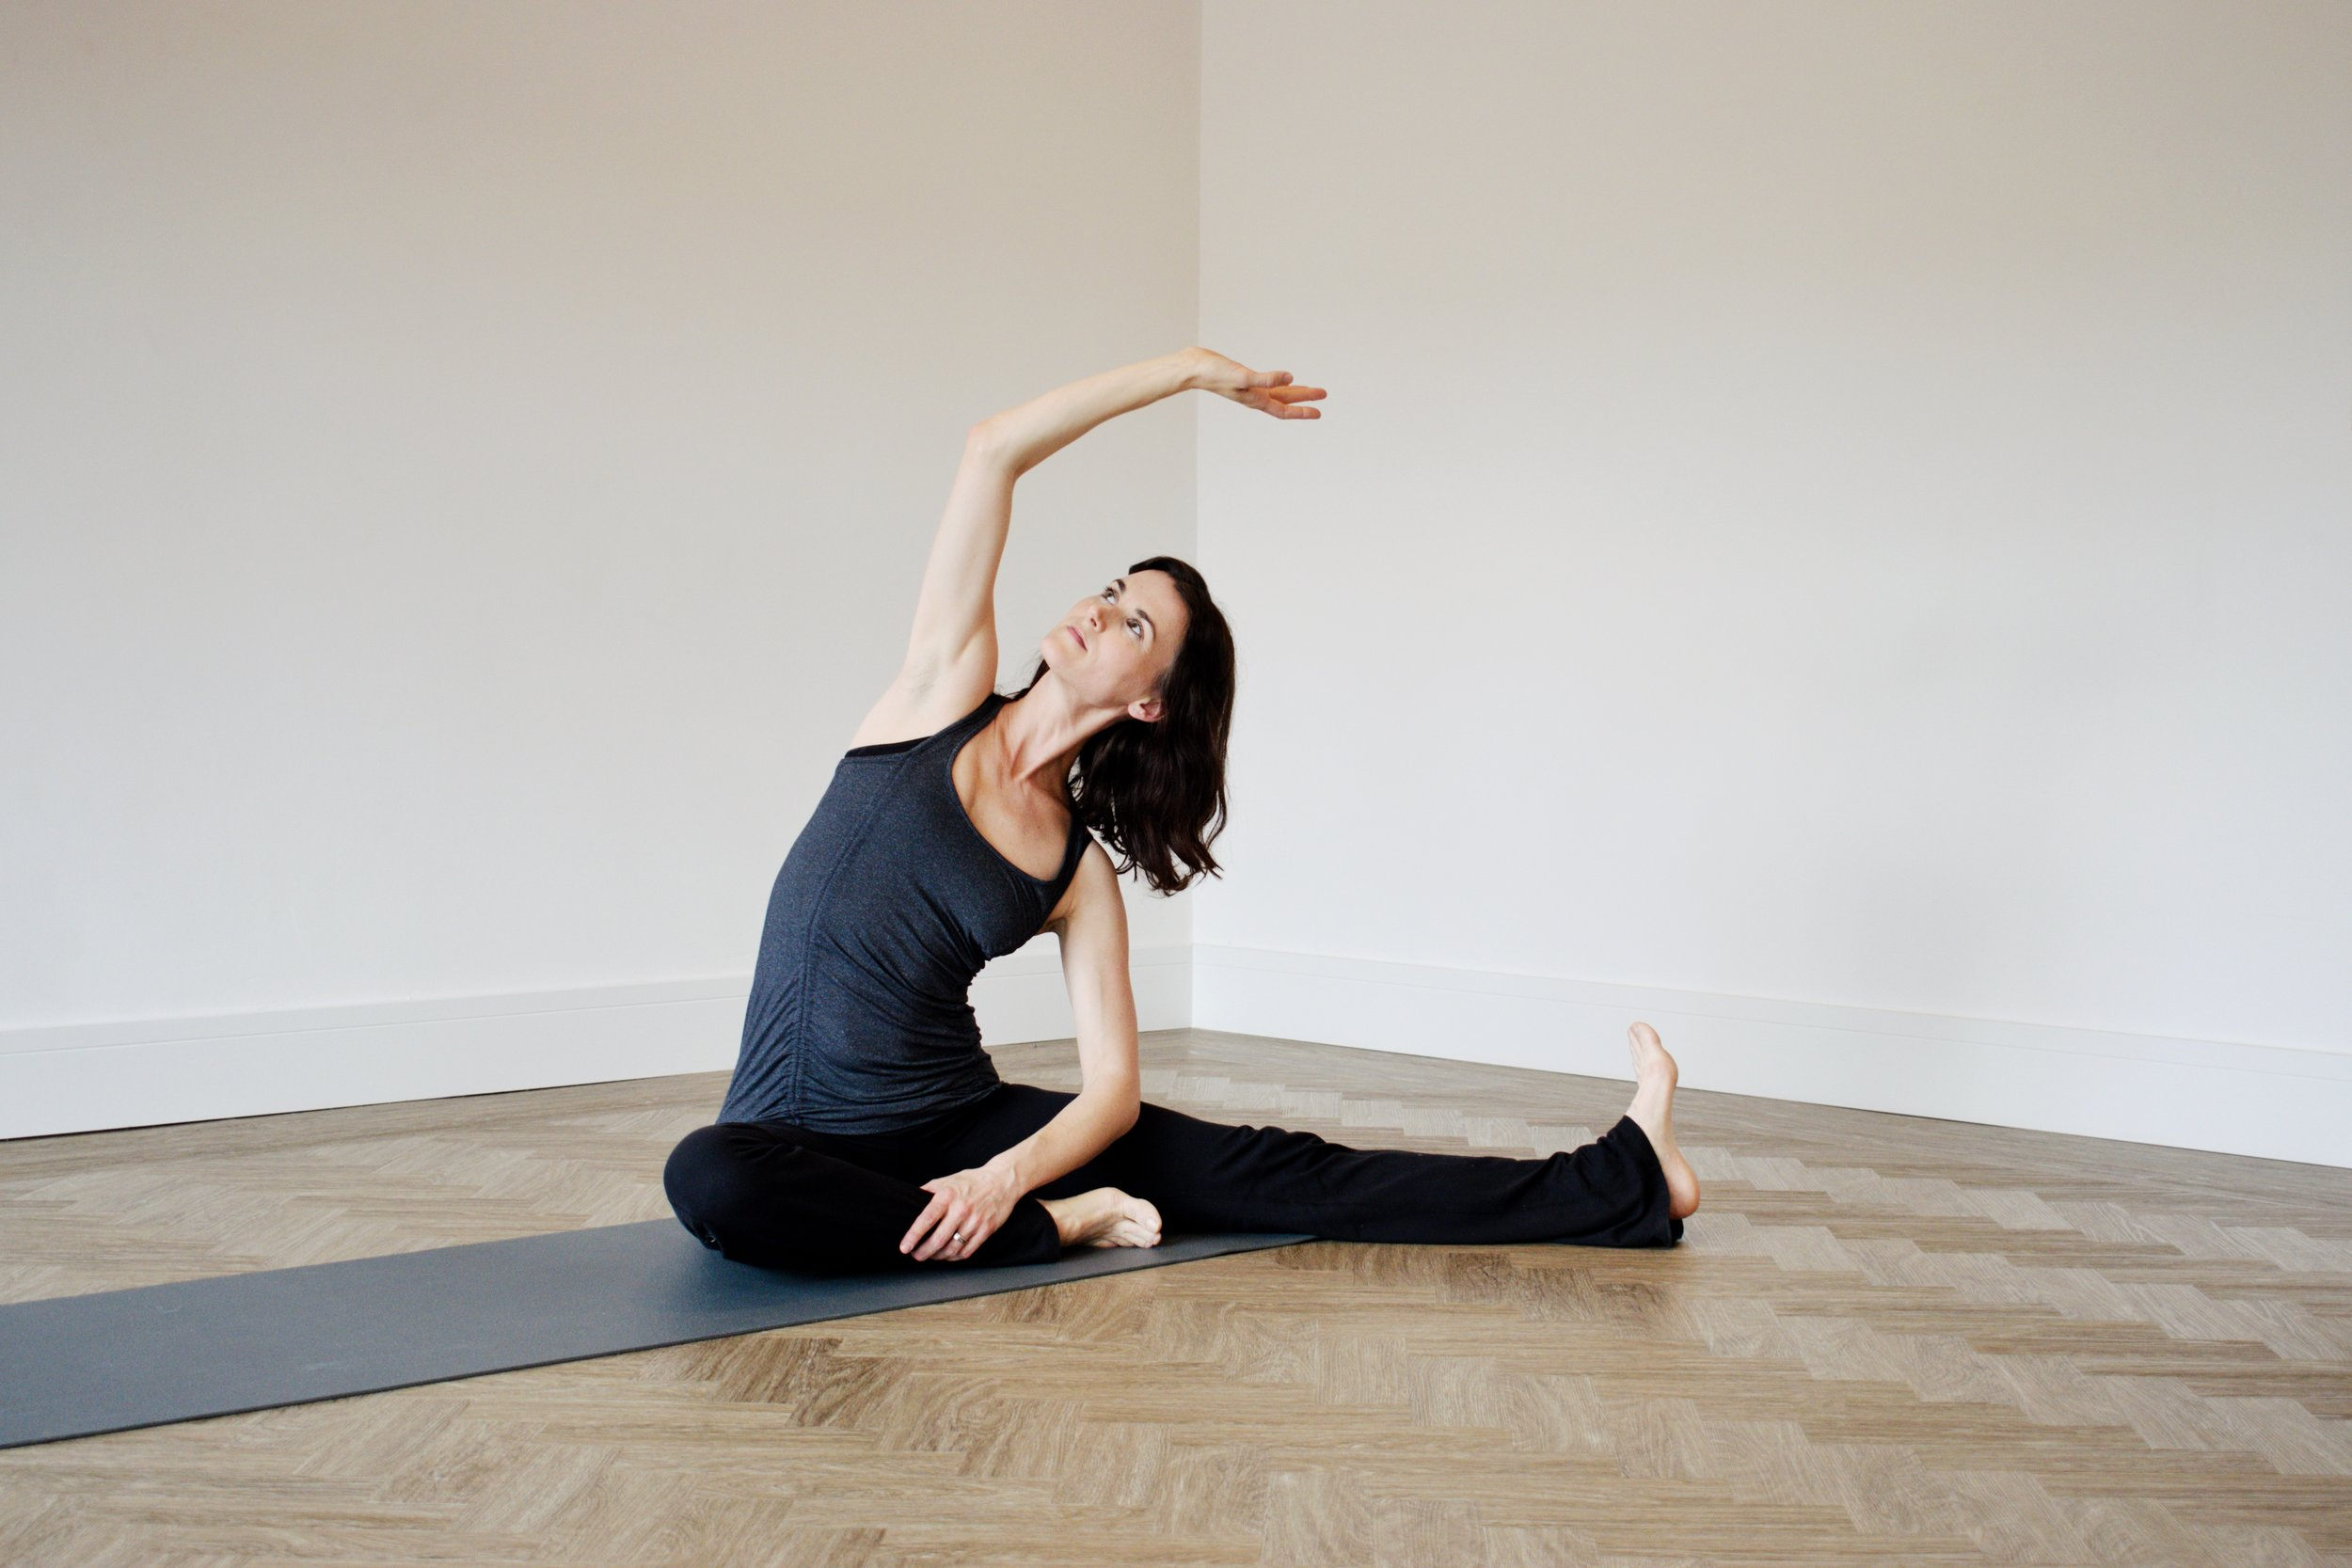 Pilates… with a twist! - Our Pilates classes focus on the breath and postural alignment by combining these two key elements it allows the body to explore elongation, decompression, joint stability, and mobility.